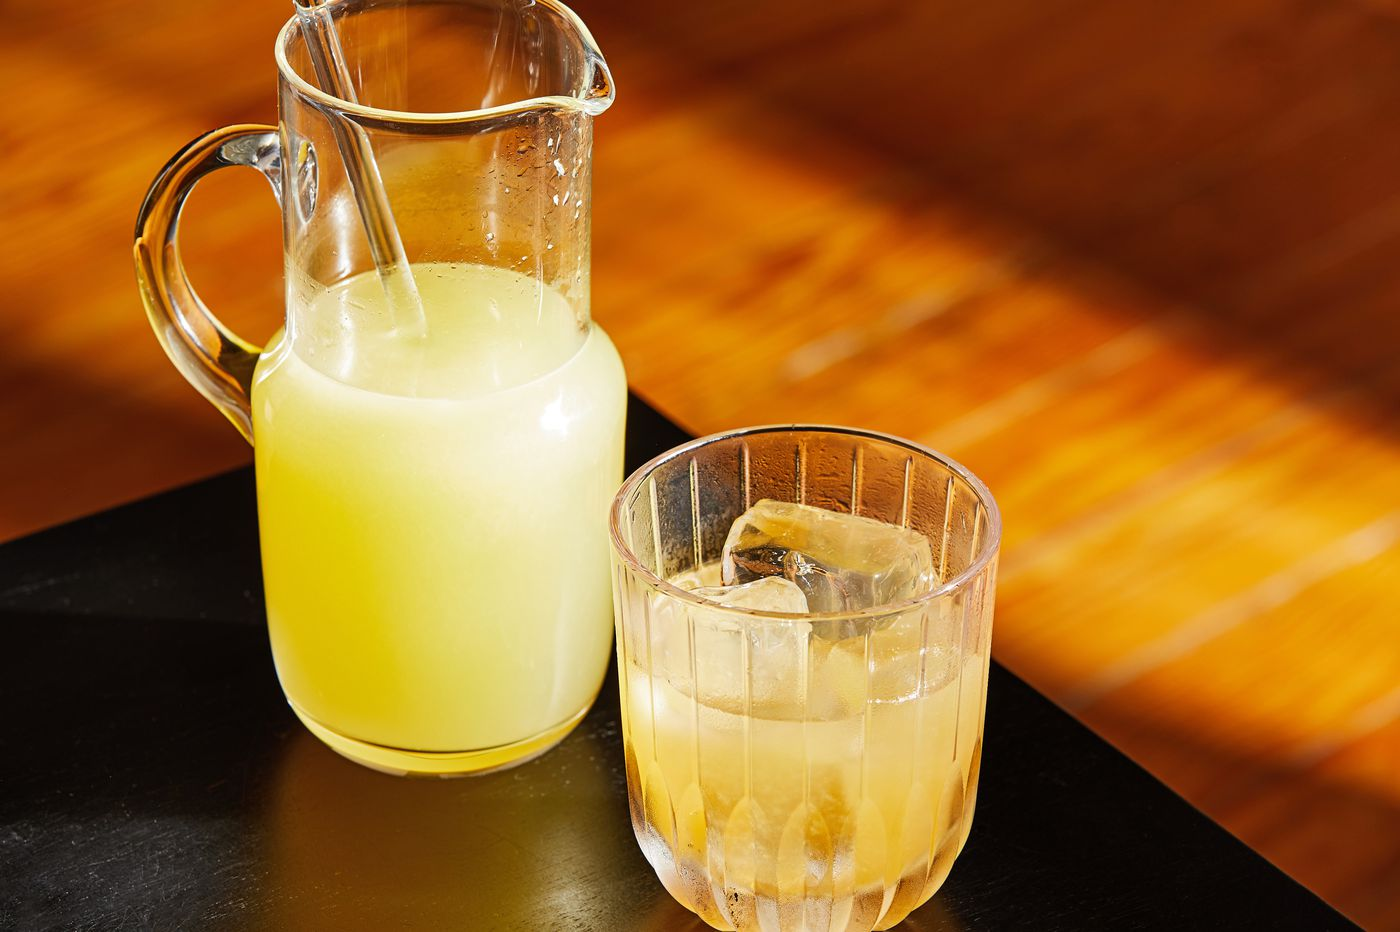 You probably have everything you need to mix great cocktails at home